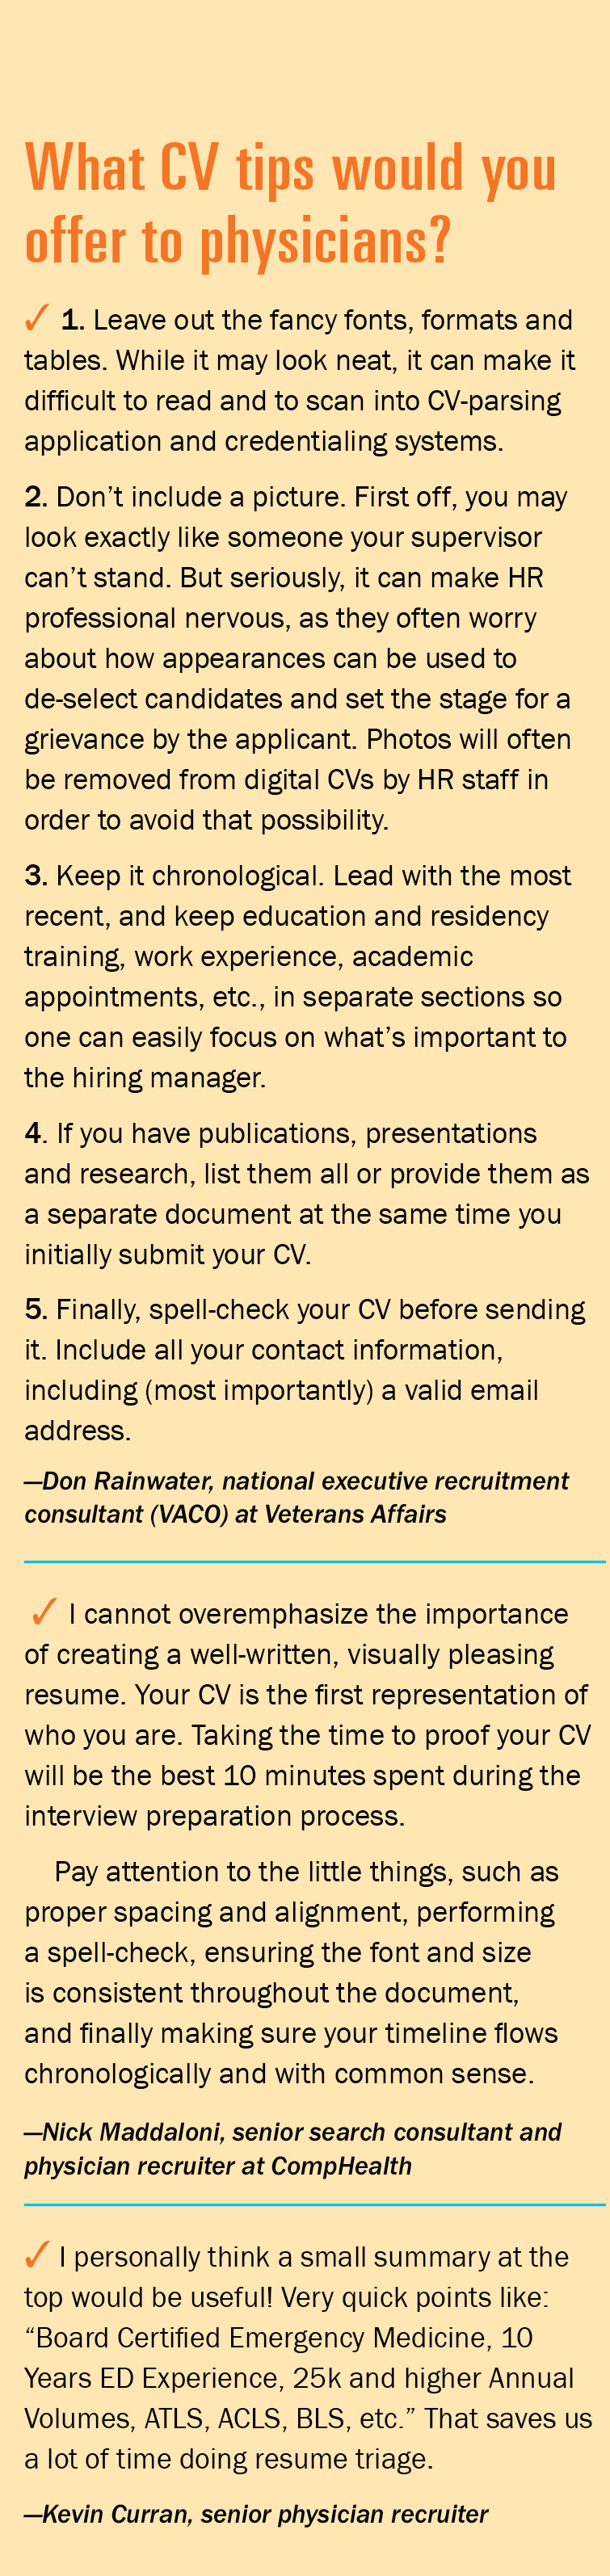 cv makeovers suggested areas of improvement cv tips